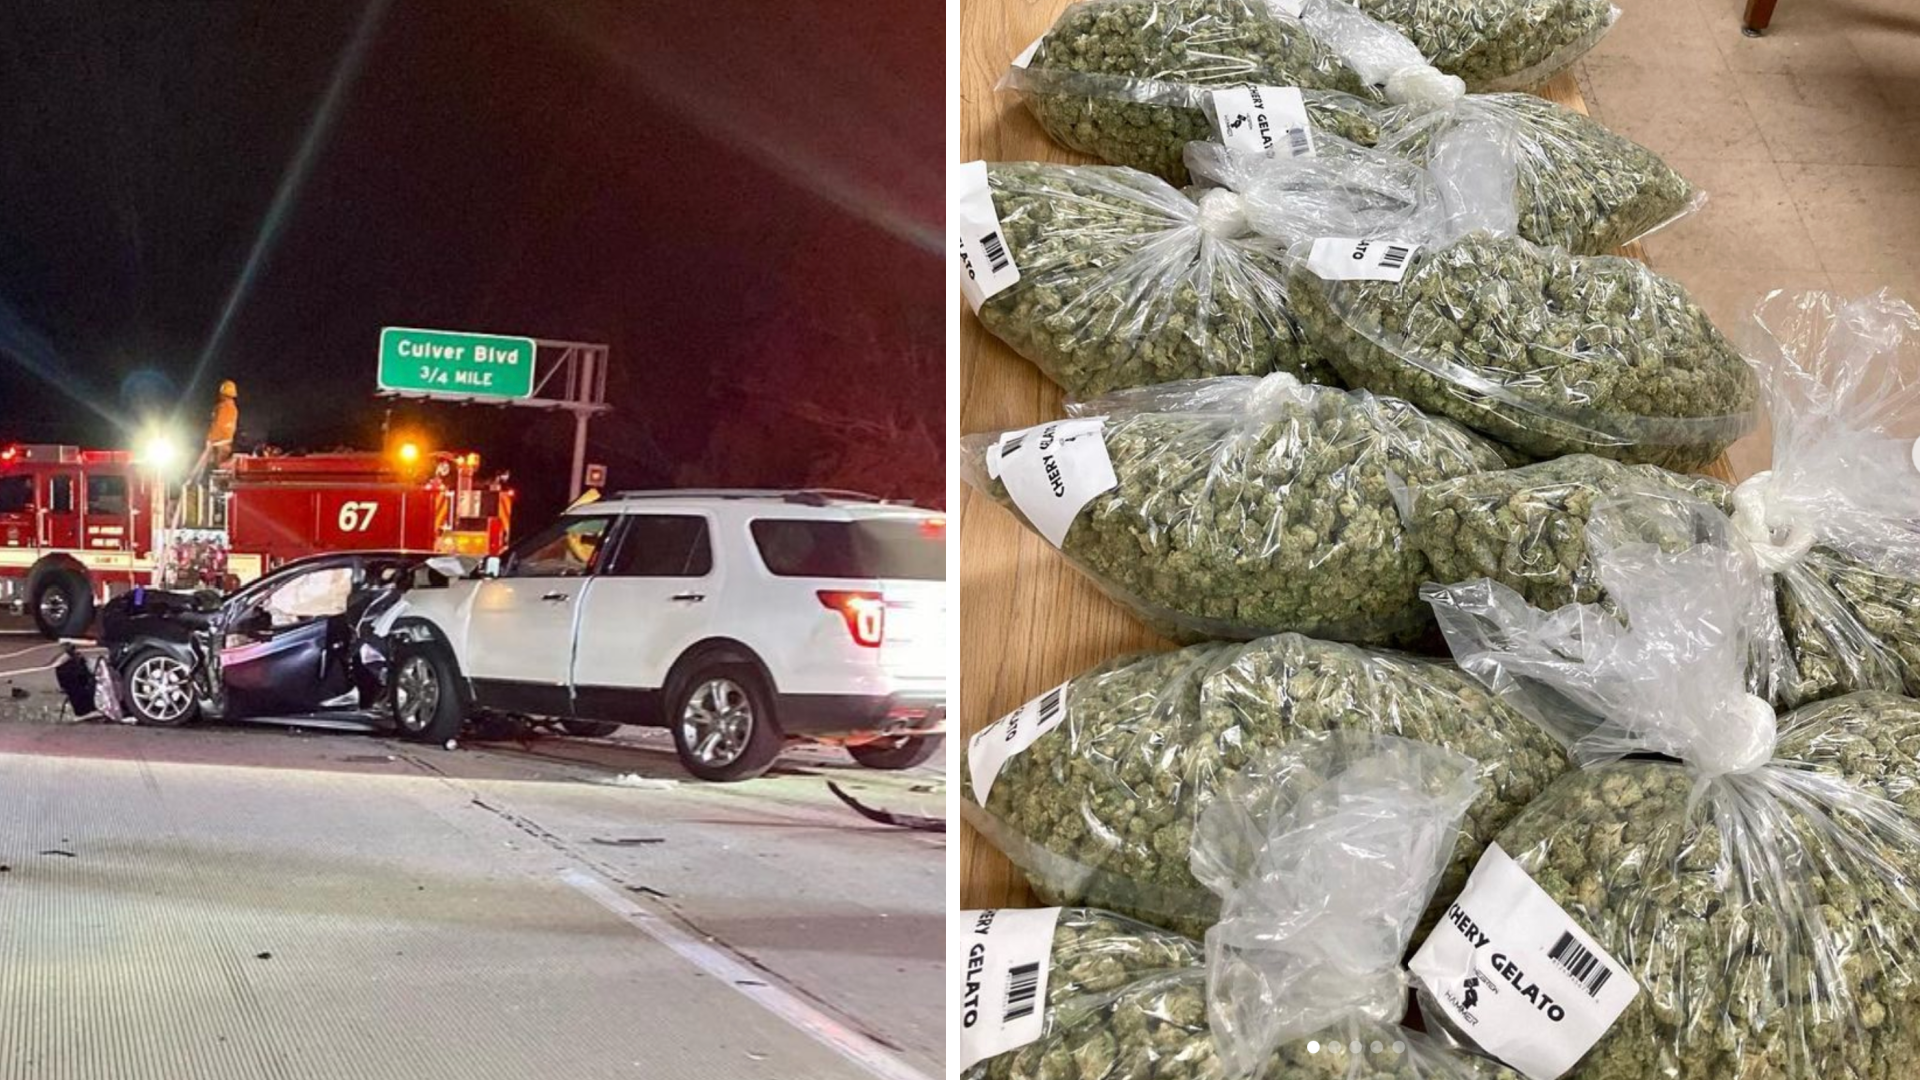 California Highway Patrol on Sept. 30, 2021, released these images after 37 pounds worth of Marijuana were discovered following a crash on the 90 Freeway in Playa del Rey. (chpwestala)